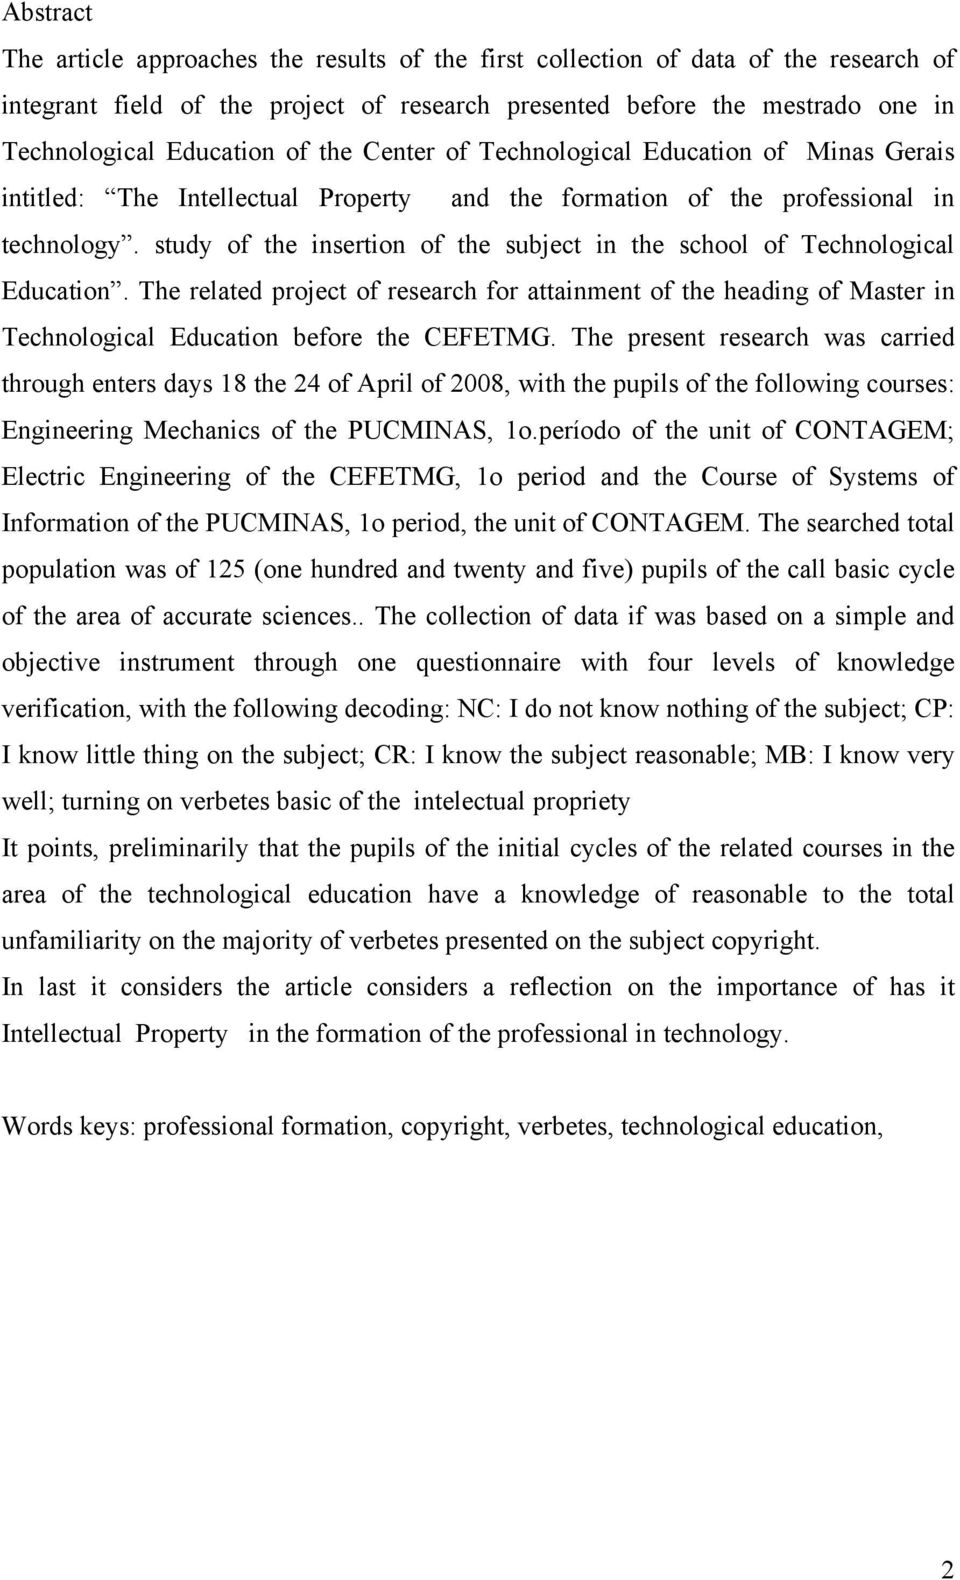 study of the insertion of the subject in the school of Technological Education. The related project of research for attainment of the heading of Master in Technological Education before the CEFETMG.